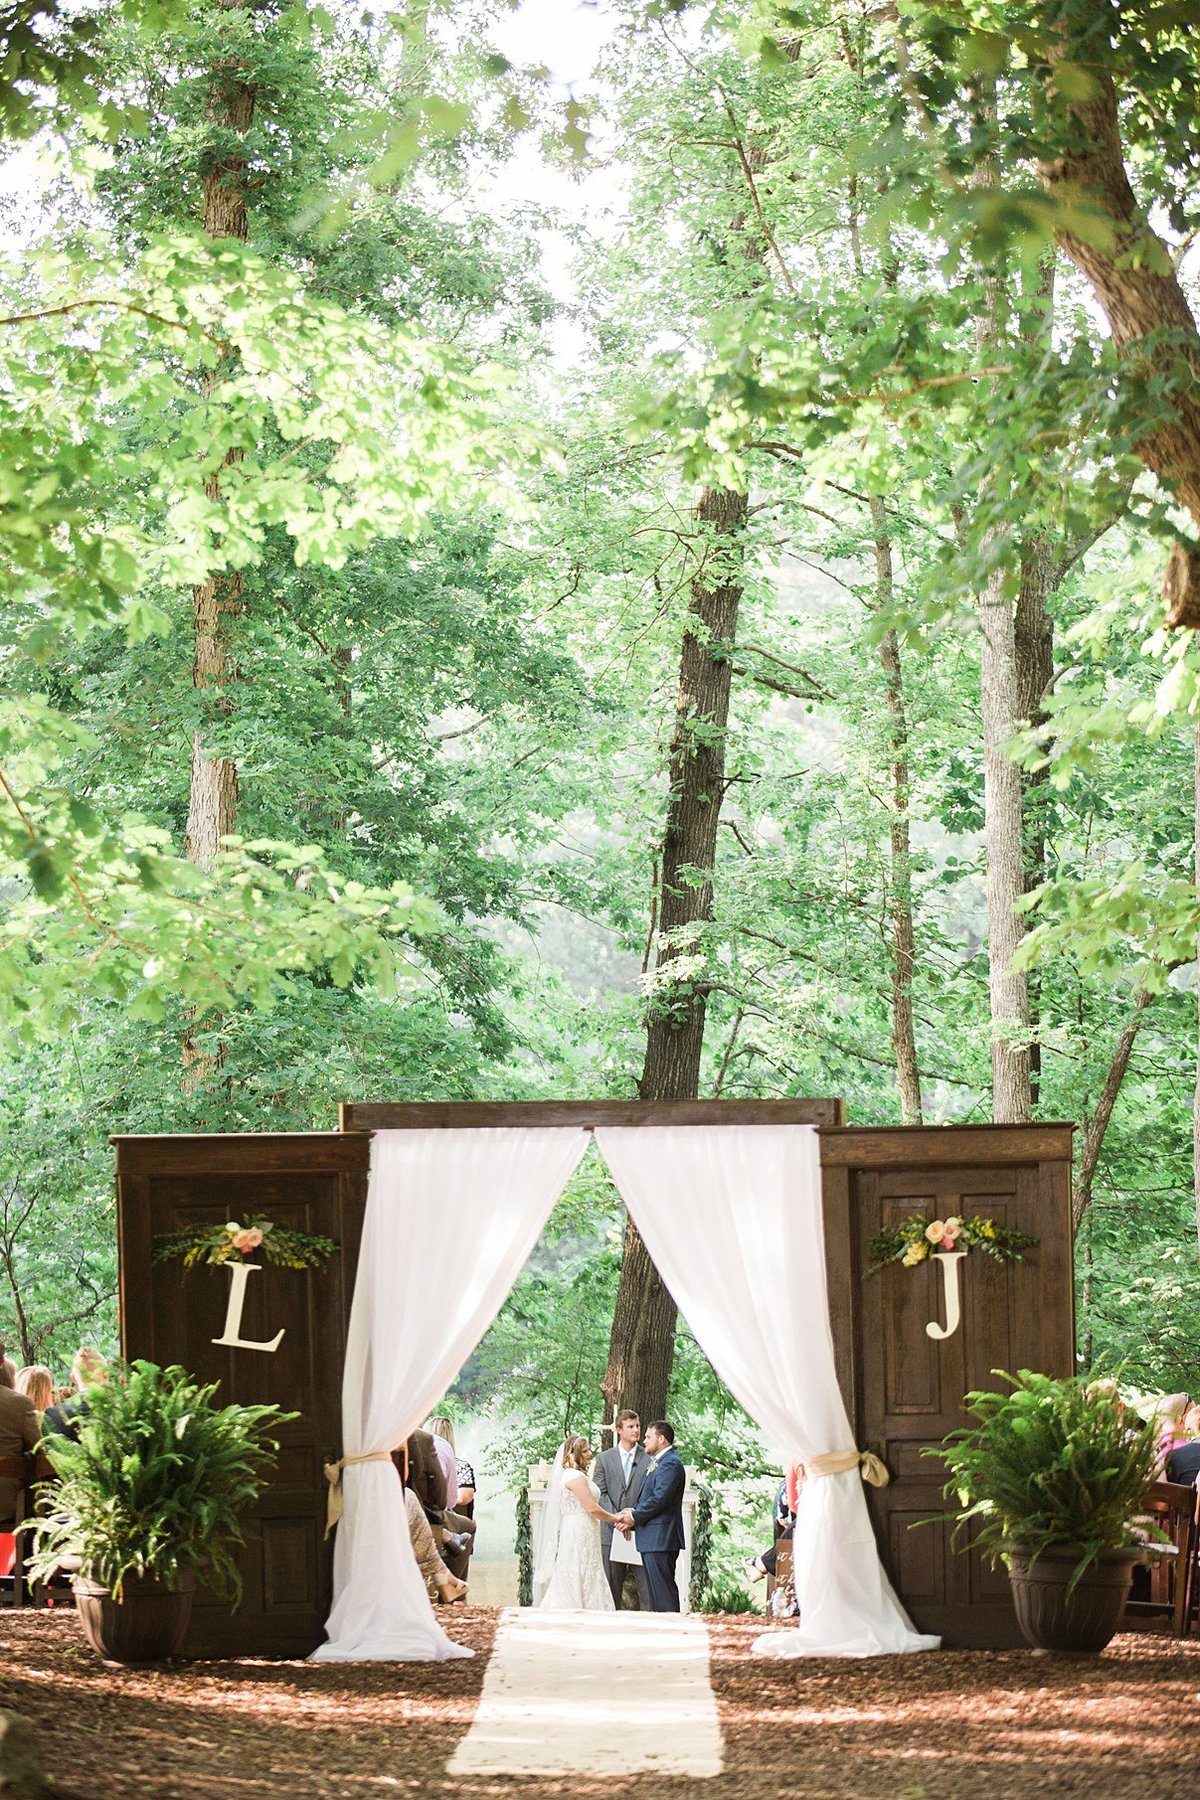 L & J Chapel in the Woods Raleigh NC Rustic Vintage Country Wedding Andrew & Tianna Photography-463